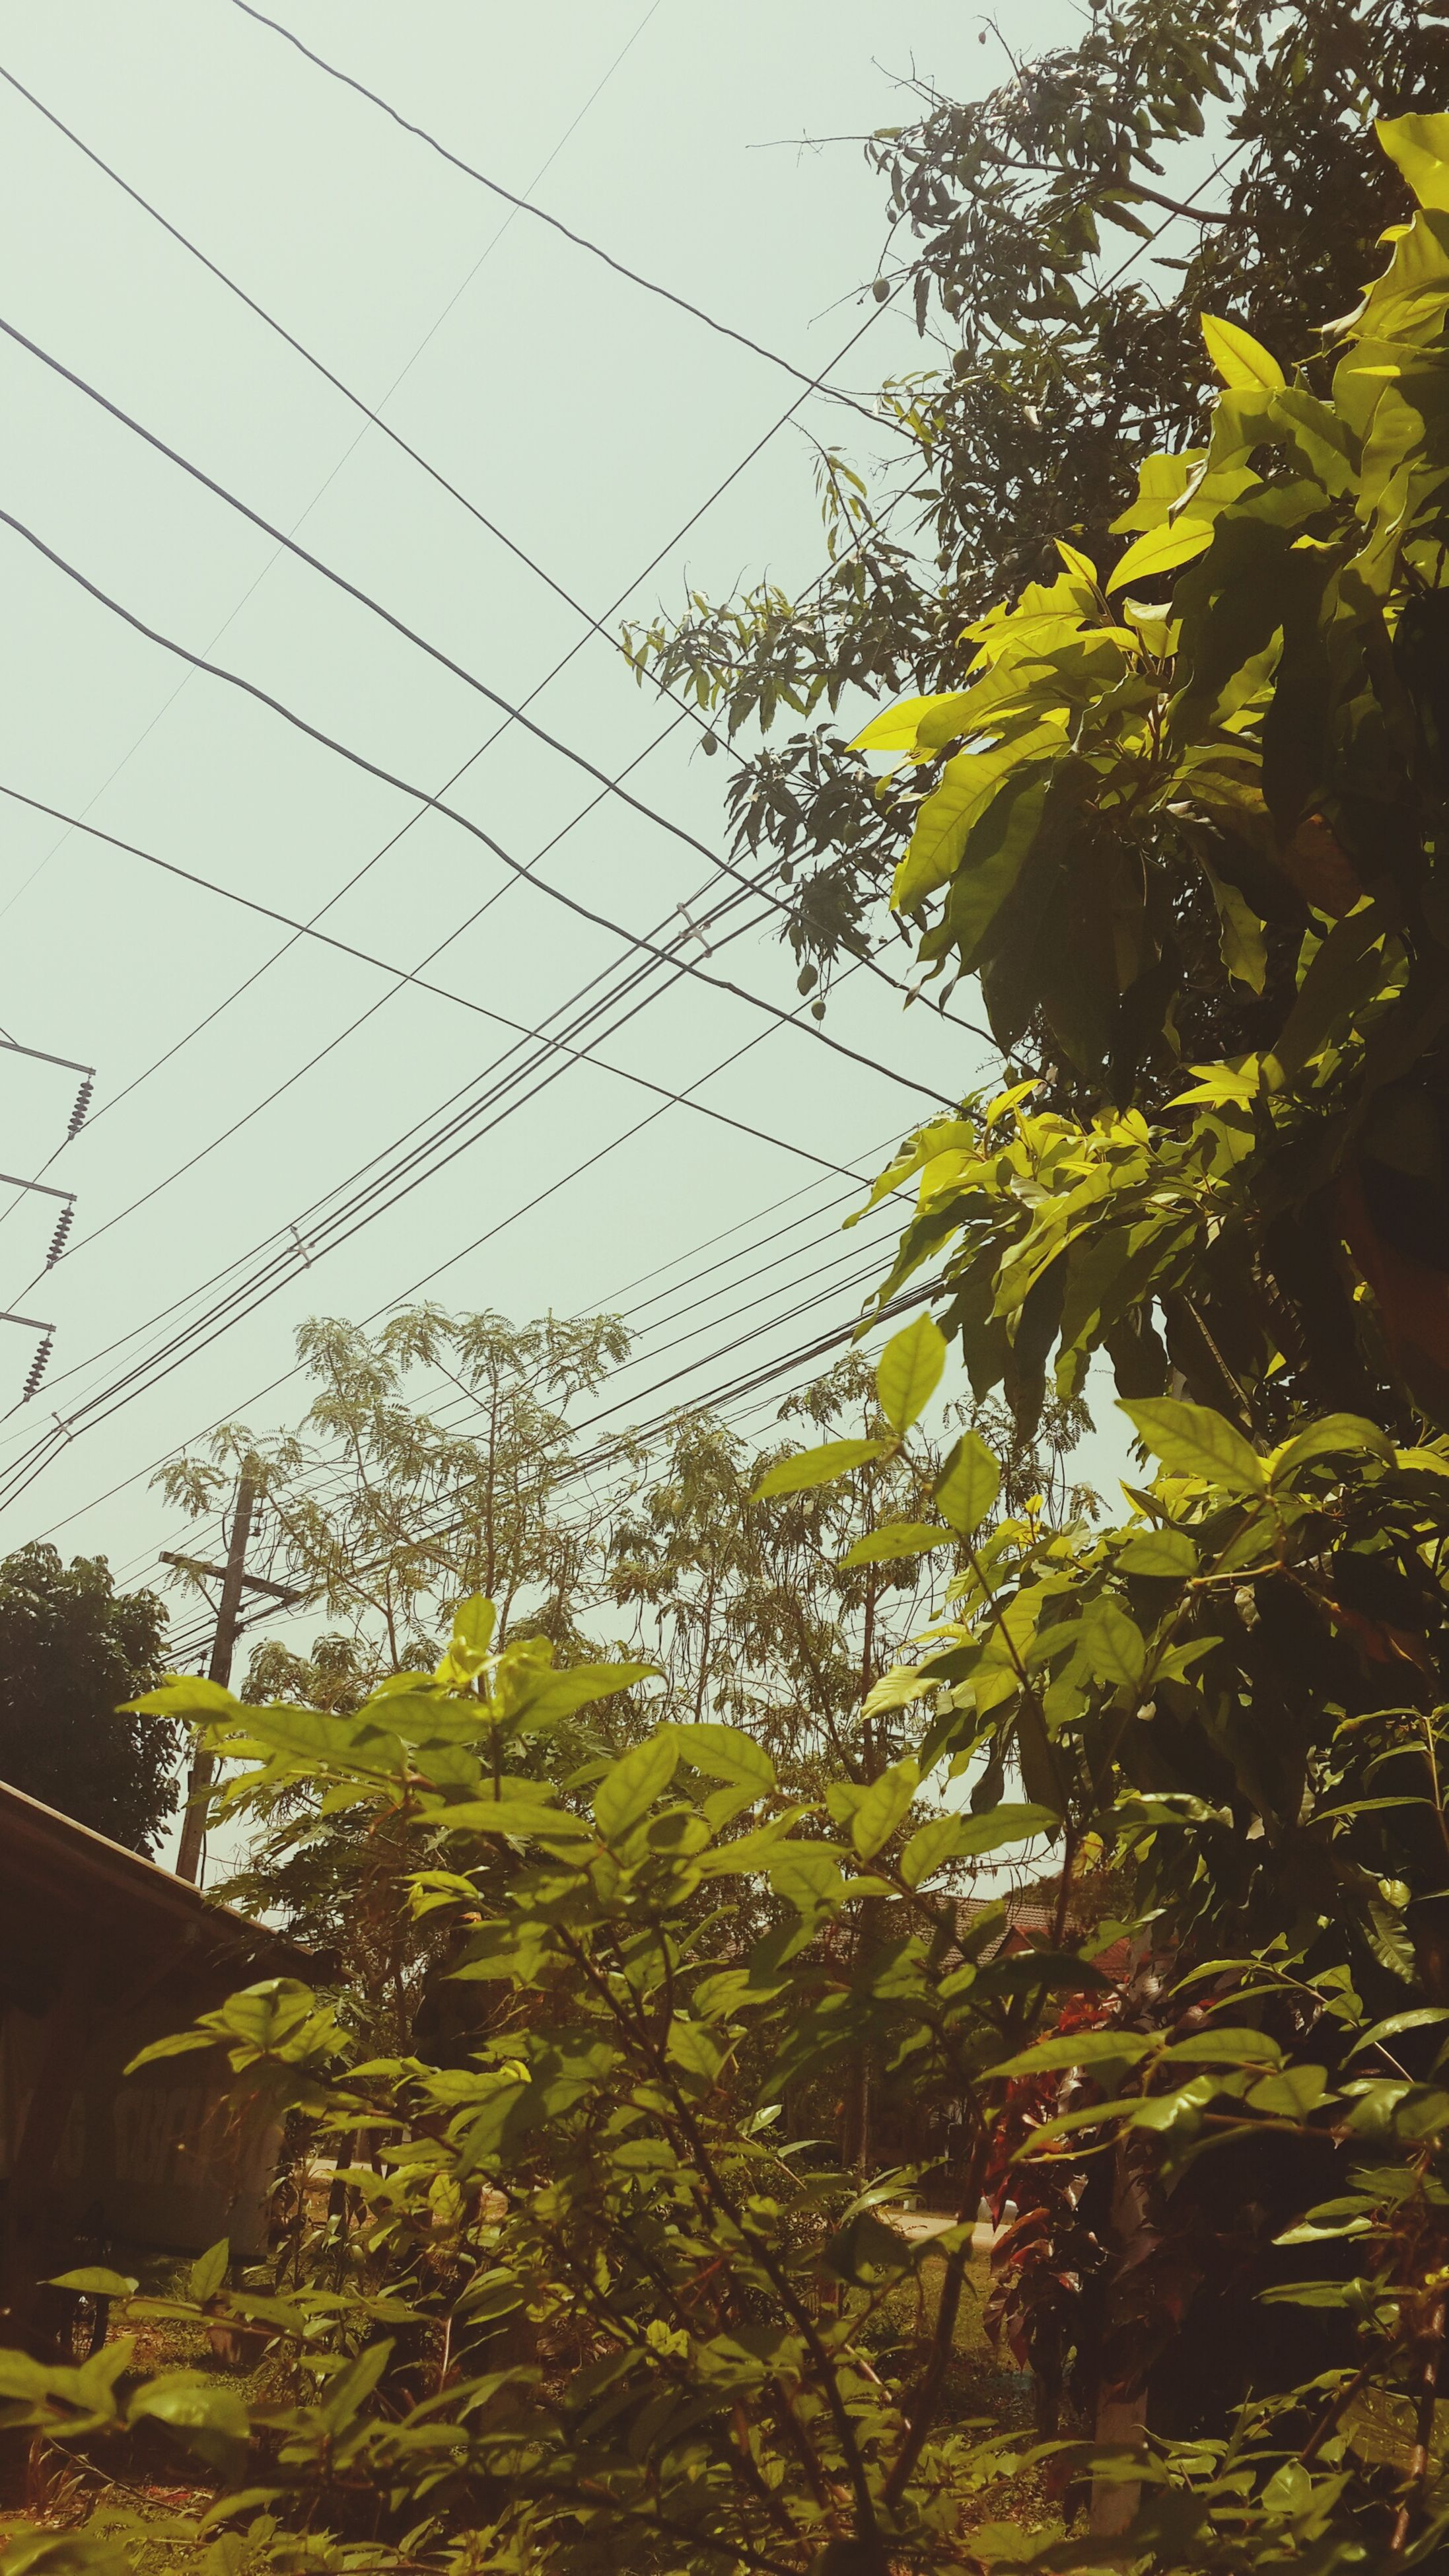 growth, power line, tree, plant, green color, clear sky, nature, low angle view, sky, electricity pylon, cable, leaf, day, outdoors, no people, built structure, electricity, building exterior, beauty in nature, connection